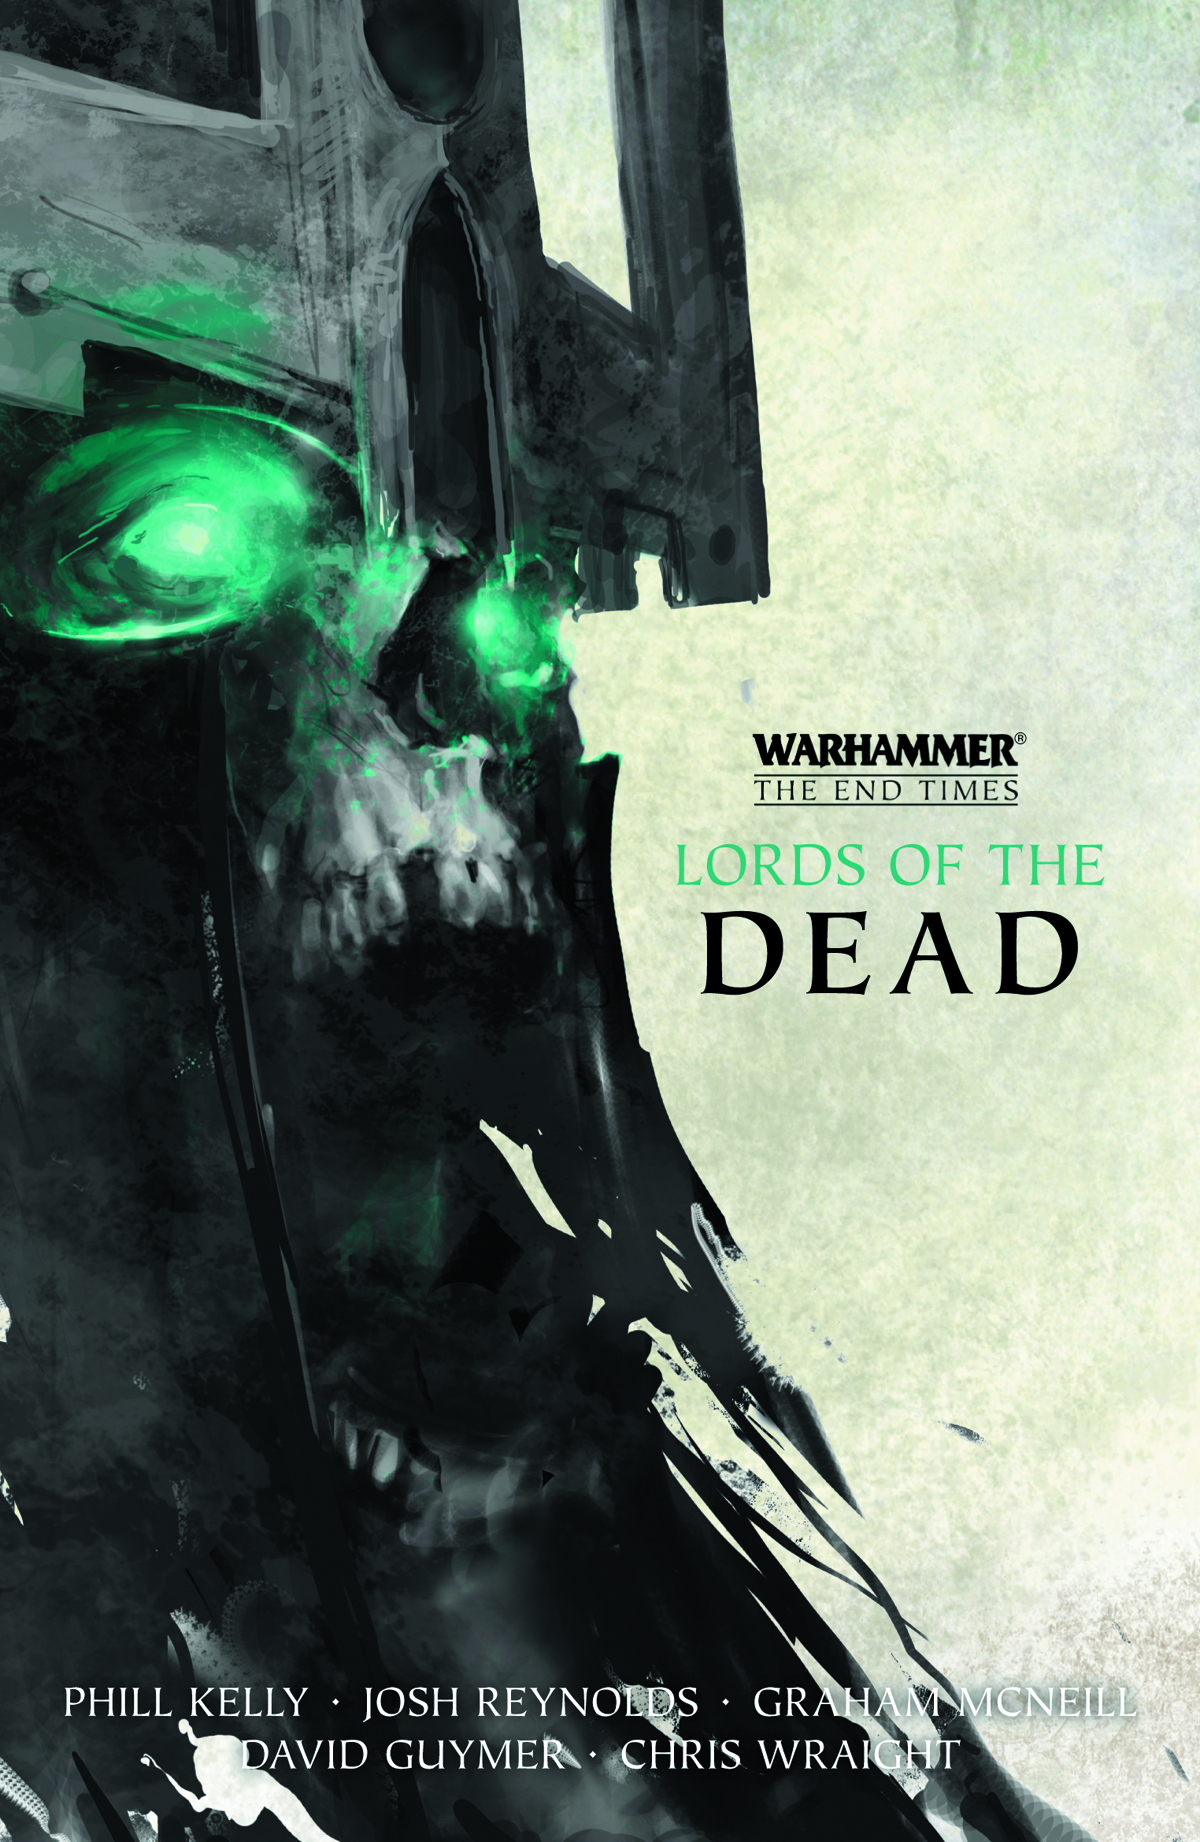 WARHAMMER LORDS OF THE DEAD SC